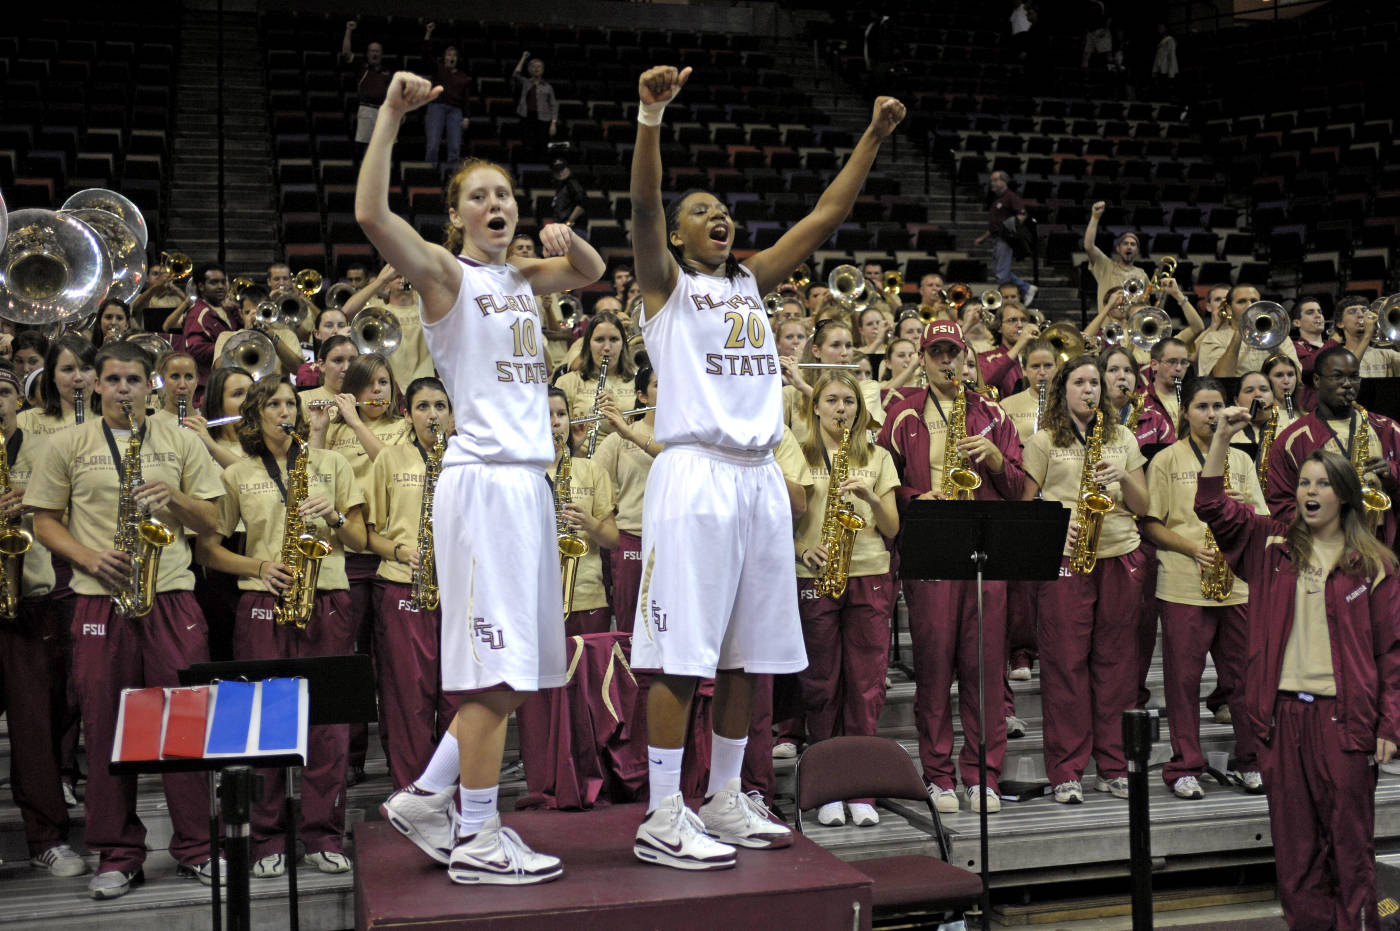 Mara Freshour and Tanae Davis-Cain celebrate their final game with the women's basketball team.